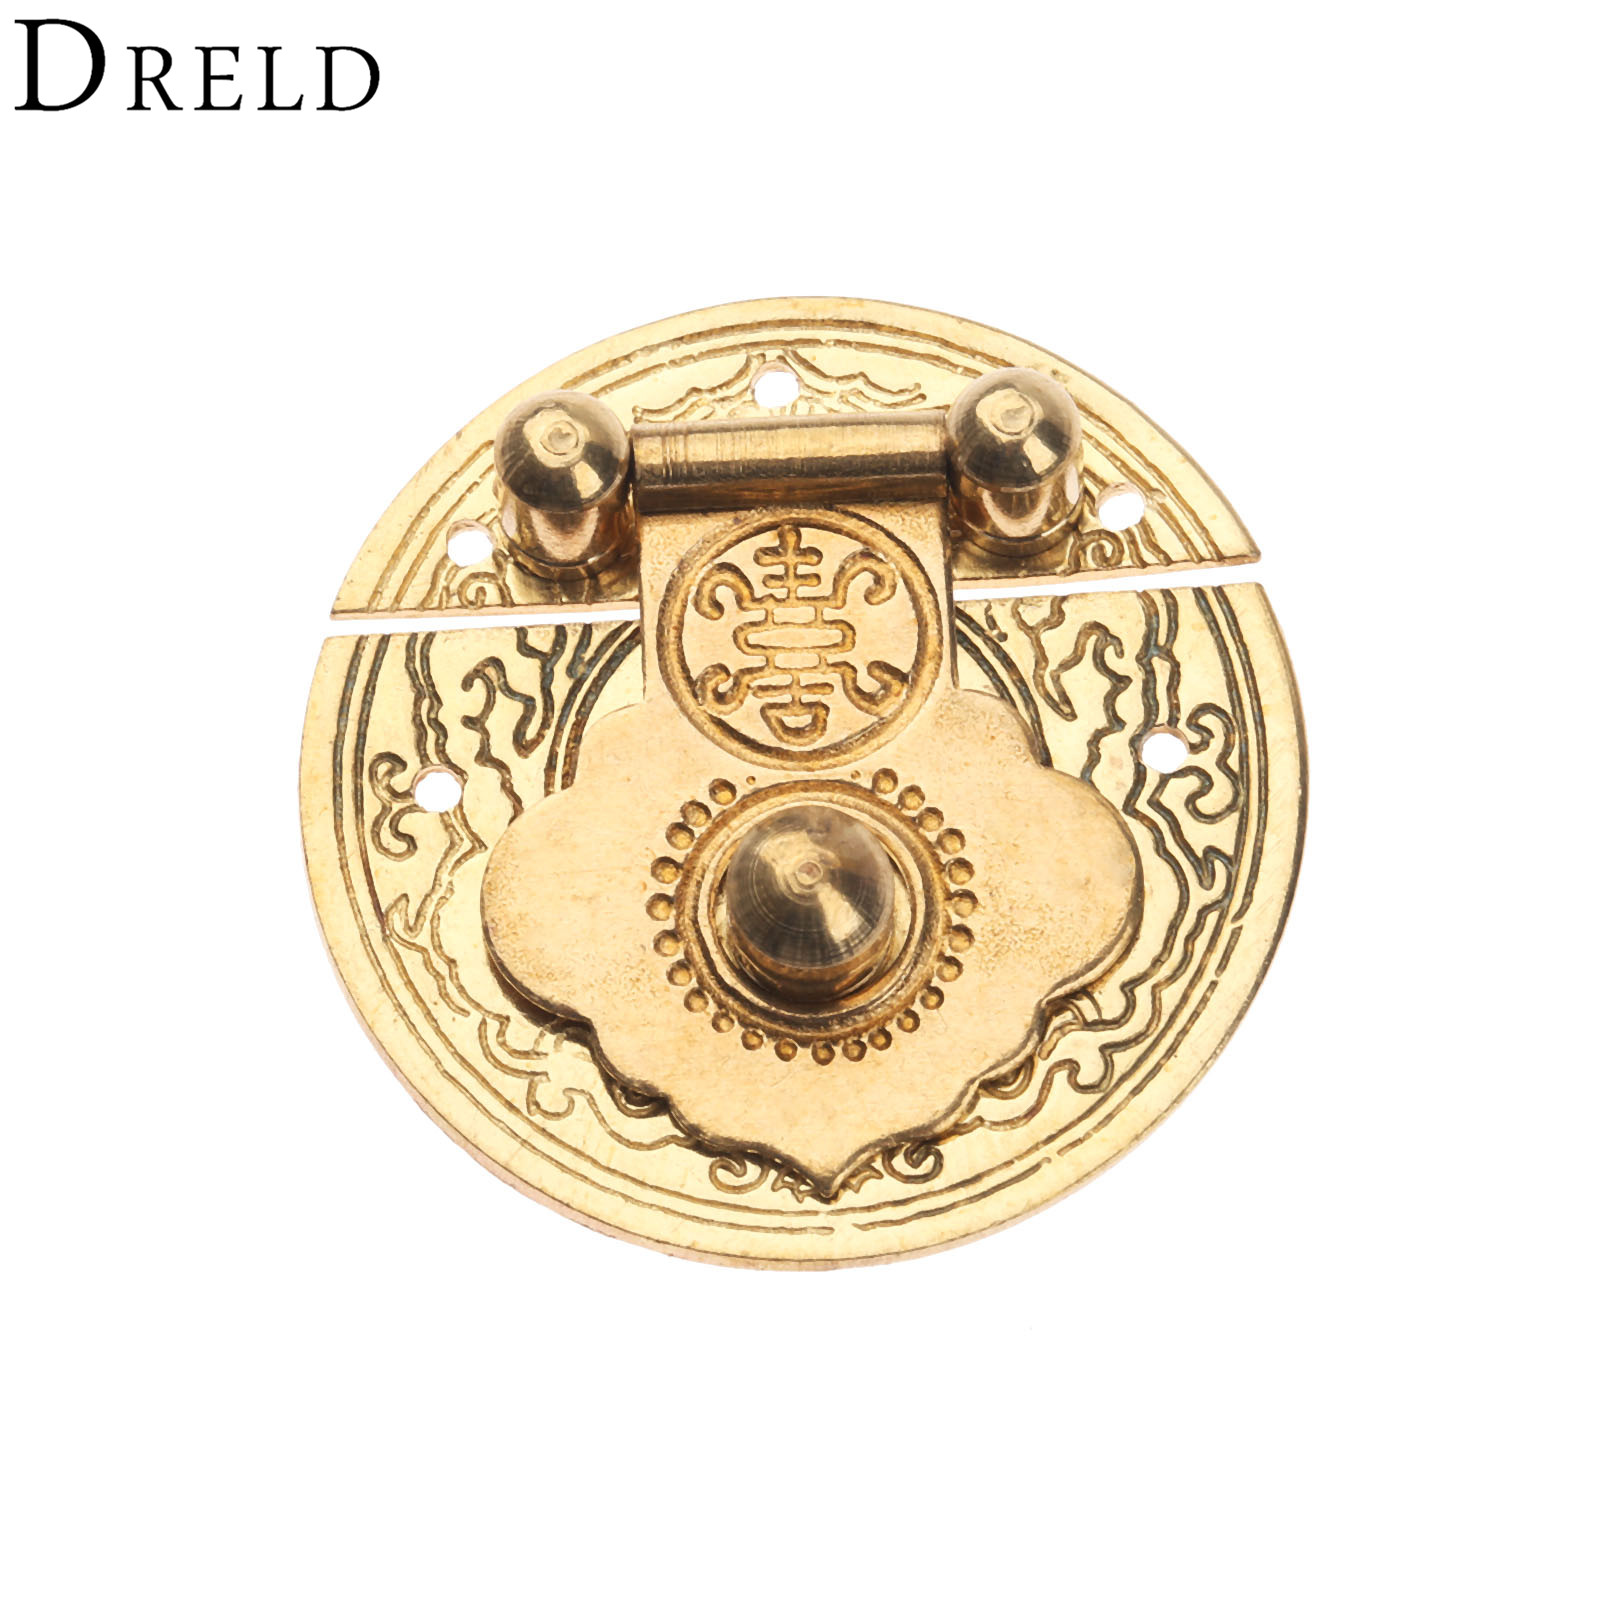 DRELD Antique Box Hasp Latches Chinese Brass Lock Catch for Jewelry Box Suitcase Buckle Clip Clasp Furniture Hardware 36mm